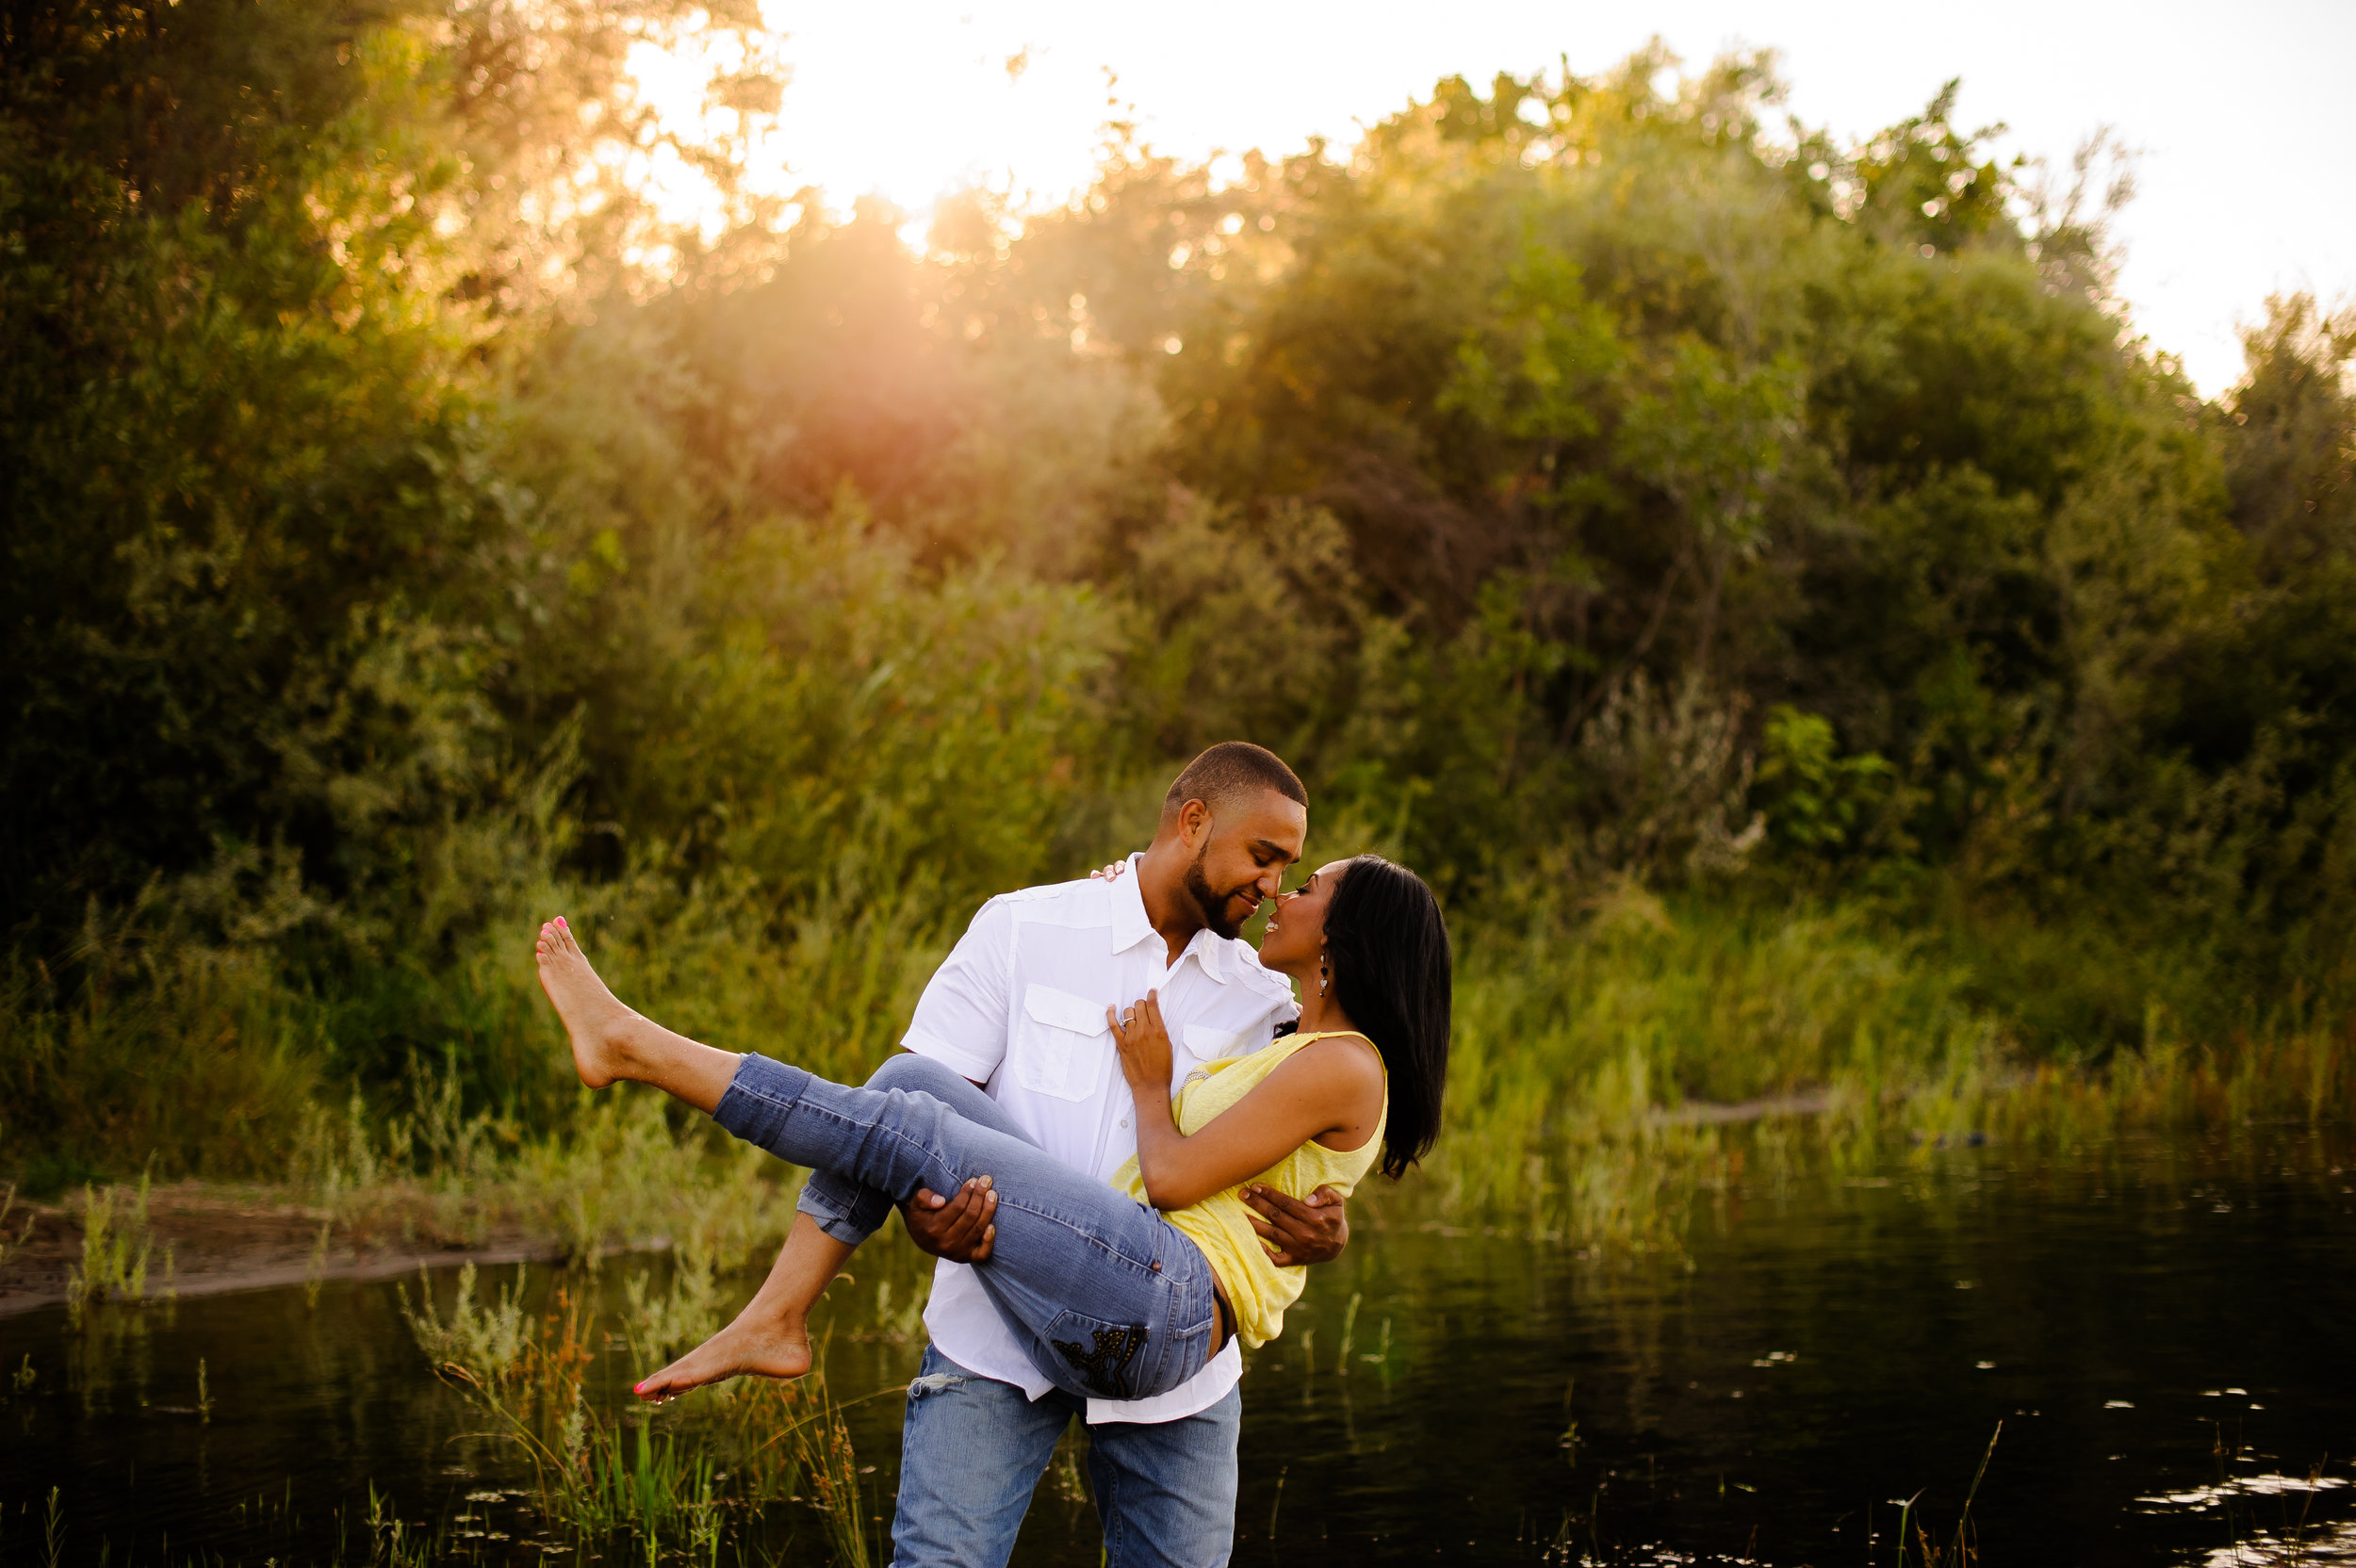 trina-cj-007-sacramento-engagement-wedding-photographer-katherine-nicole-photography.JPG